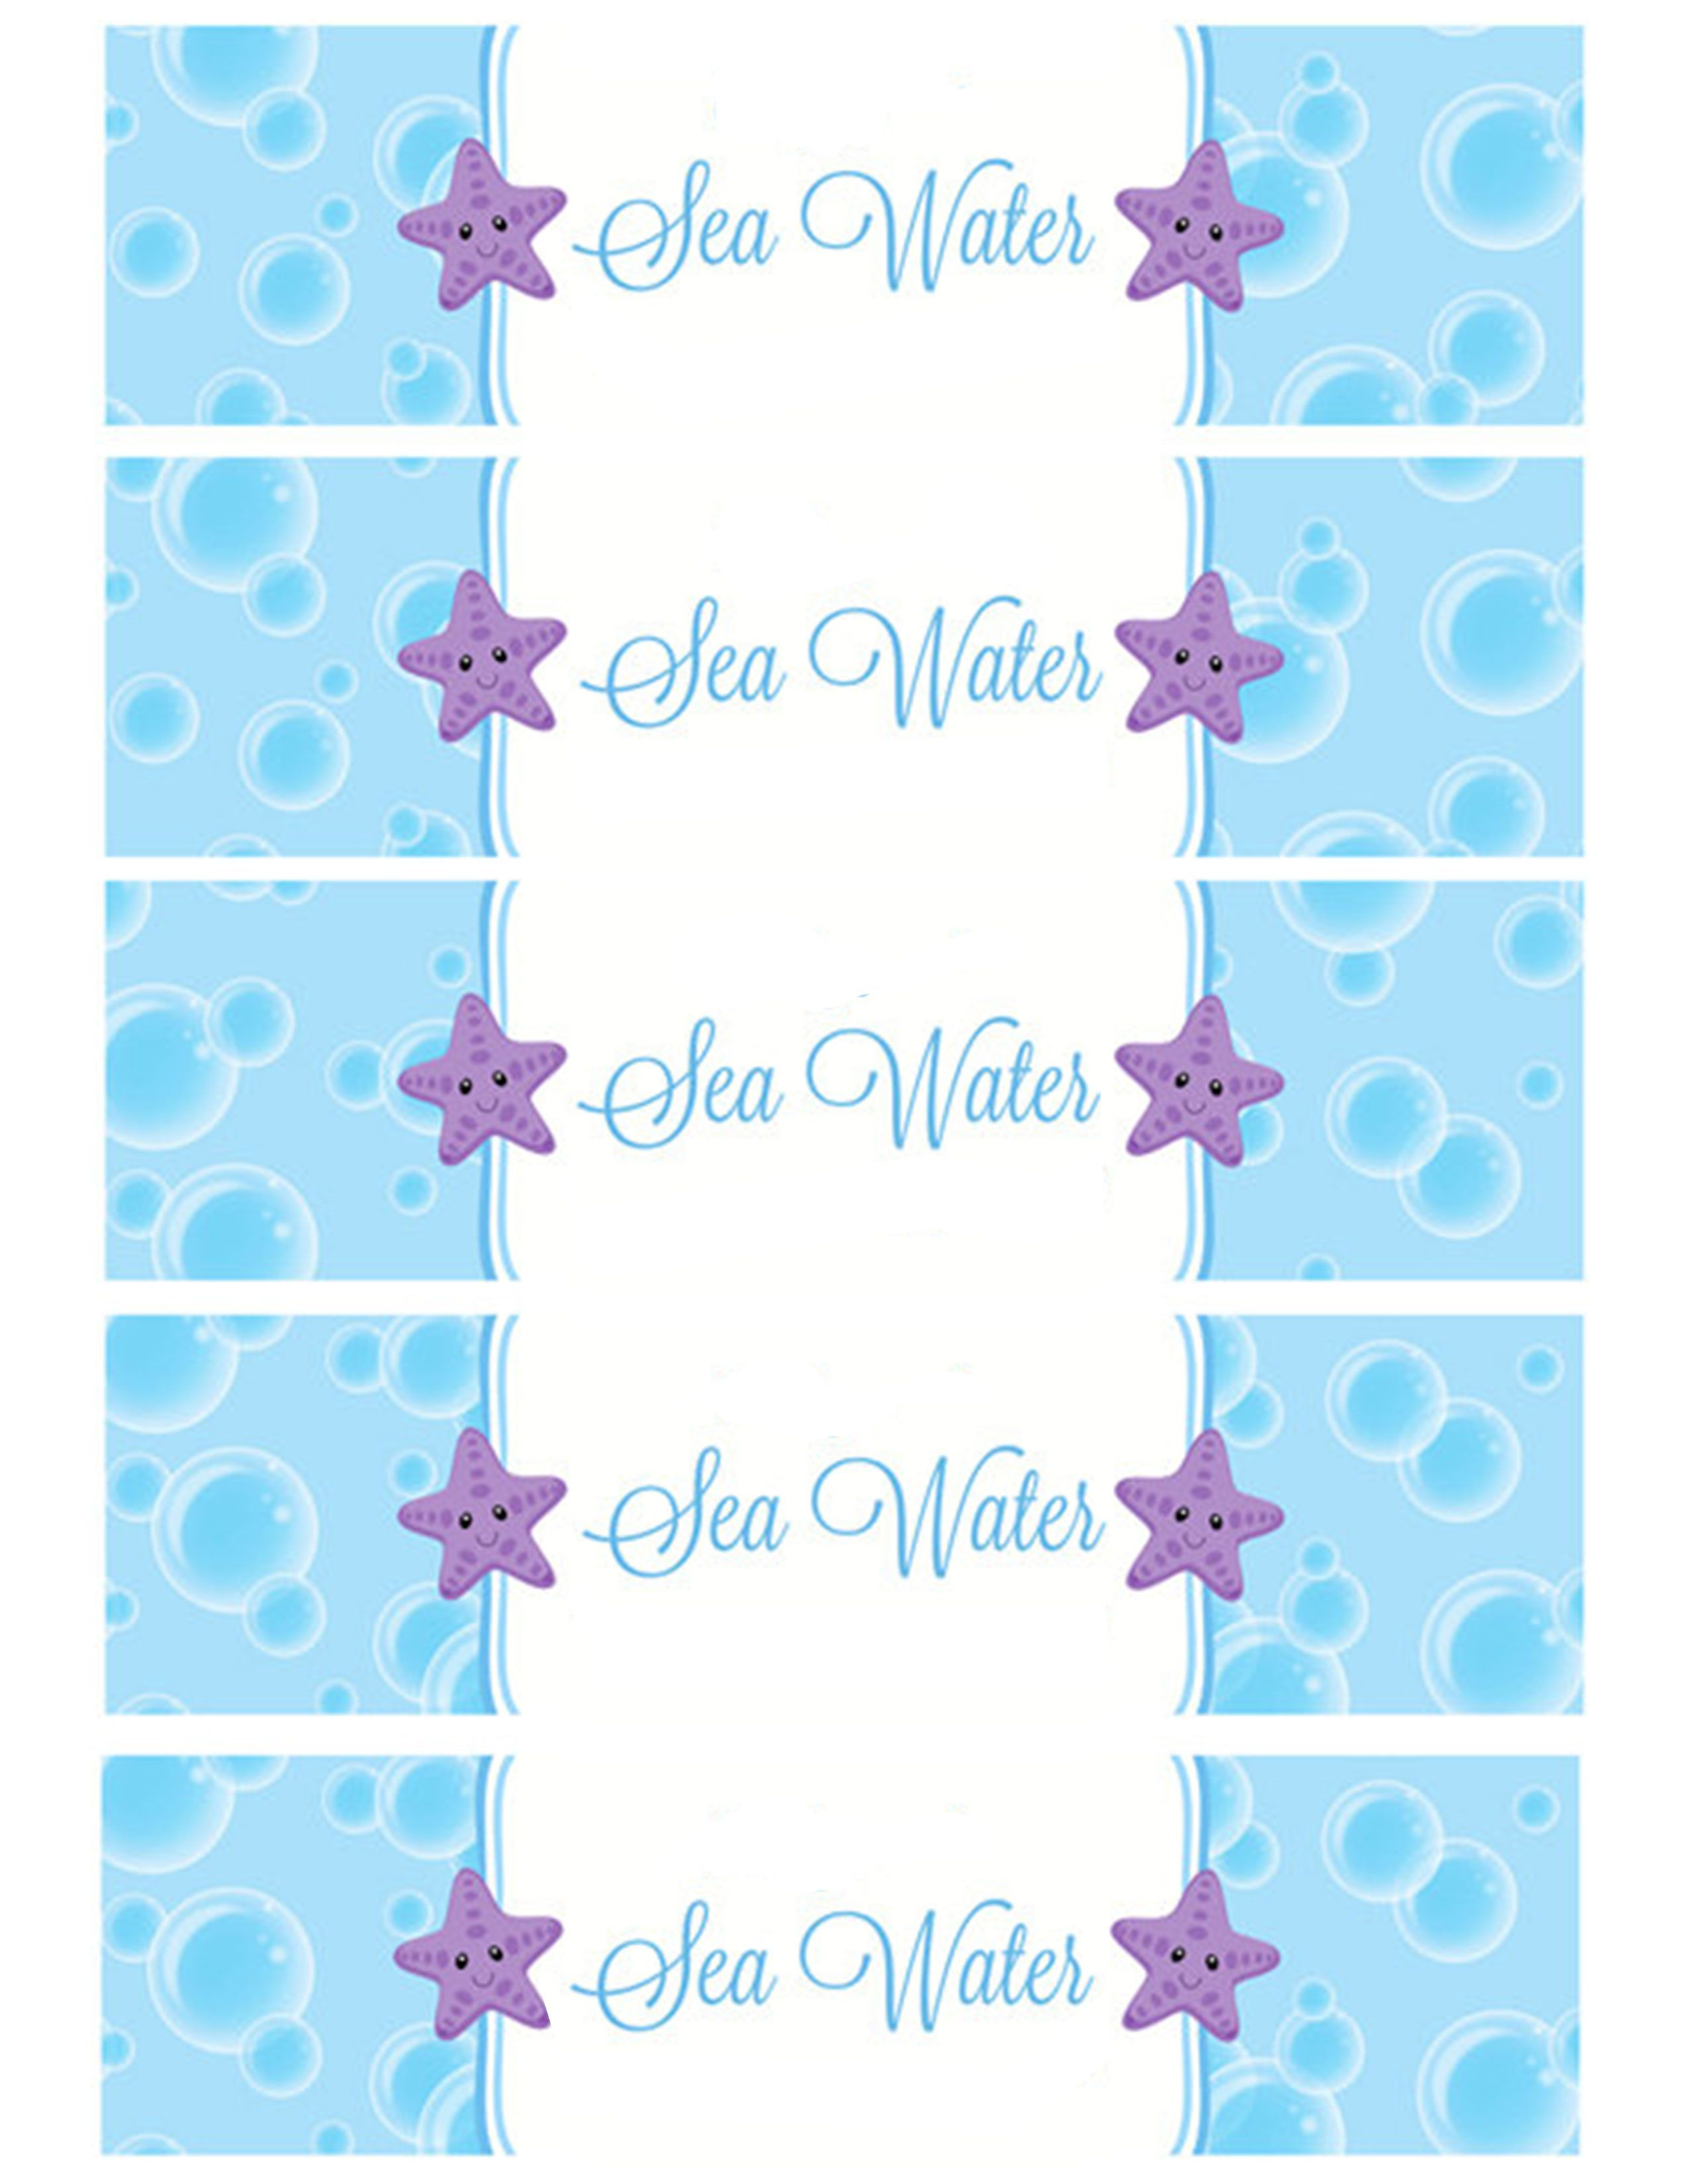 graphic regarding Free Printable Water Bottle Labels for Birthday titled Sea Drinking water H2o Bottle labels Trip - Birthday Social gathering within just